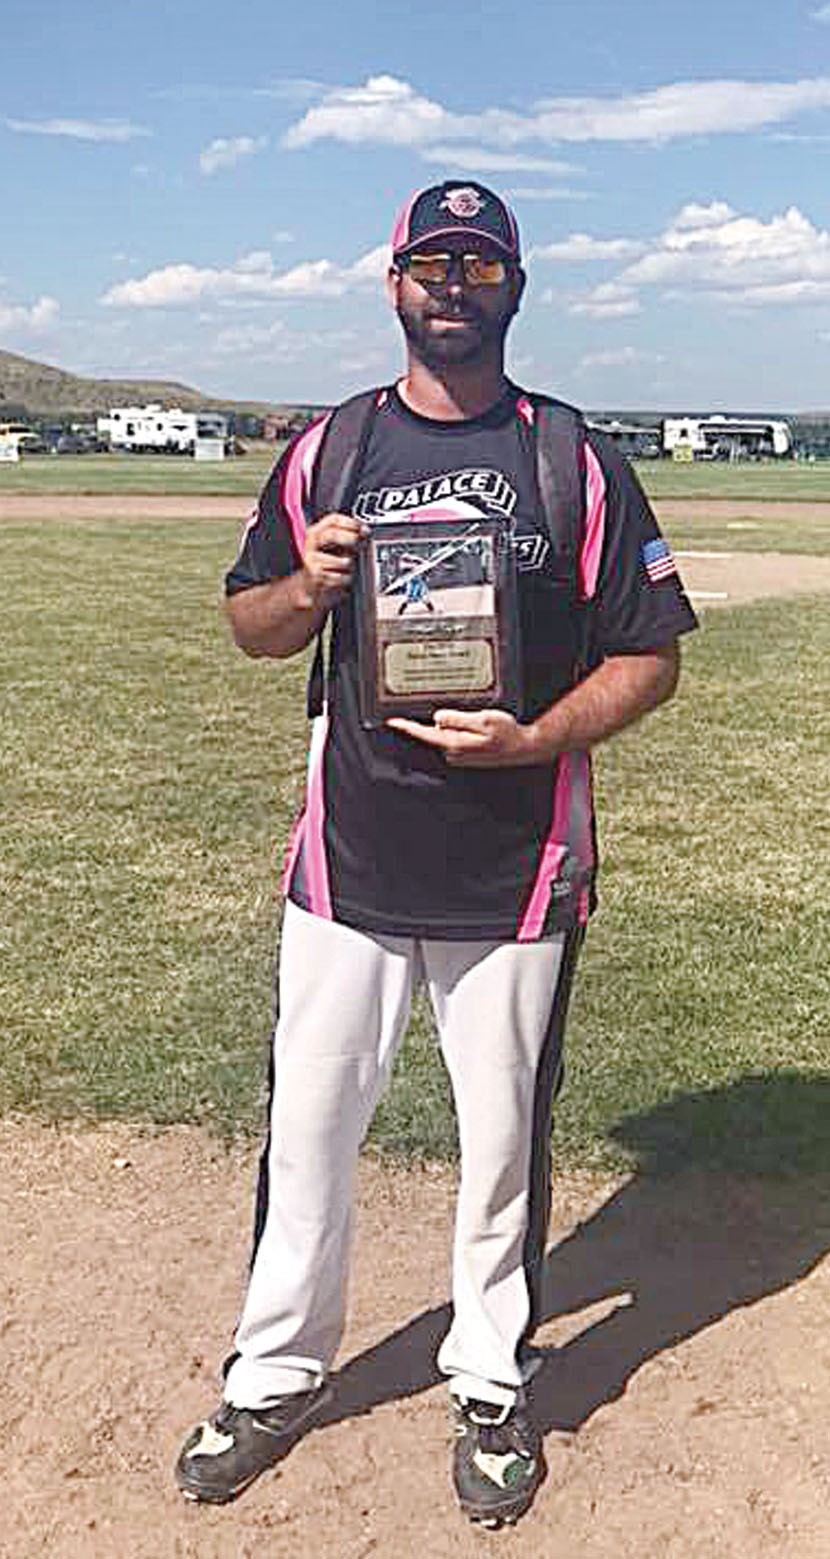 Photo courtesy of George BergRobert Herring, from Skoden, received the Forest Dana award at this year's annual softball tournament. Chosen by tournament coordinators, the recipient of the award best exemplifies the memory of Dana through sportsmanship and hard work.